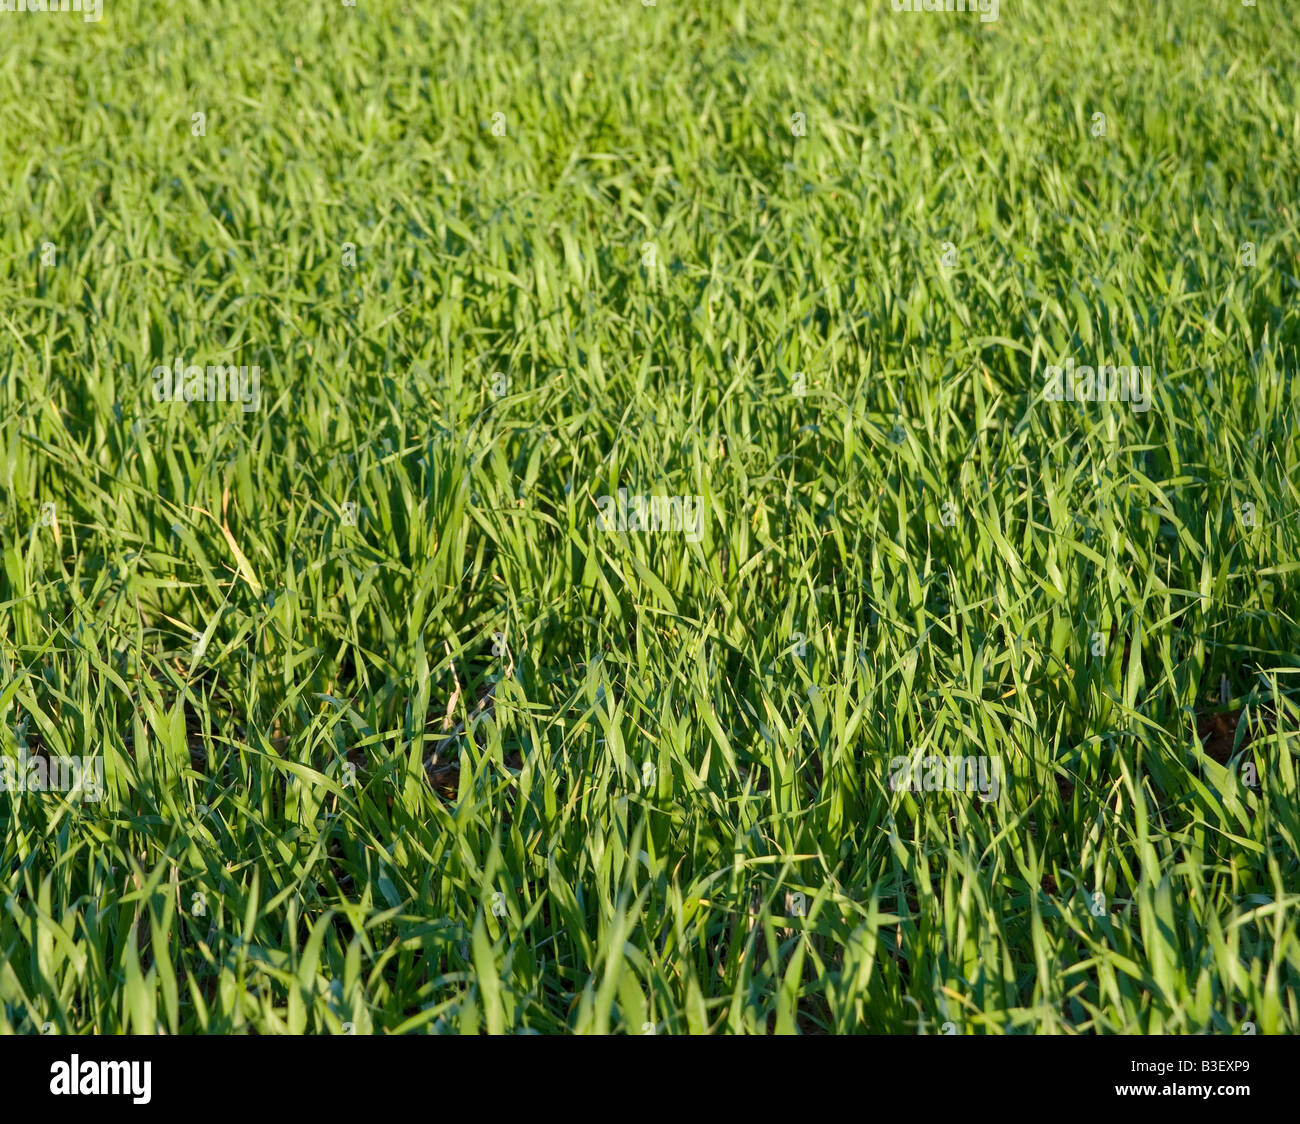 great background image of lush green grass - Stock Image